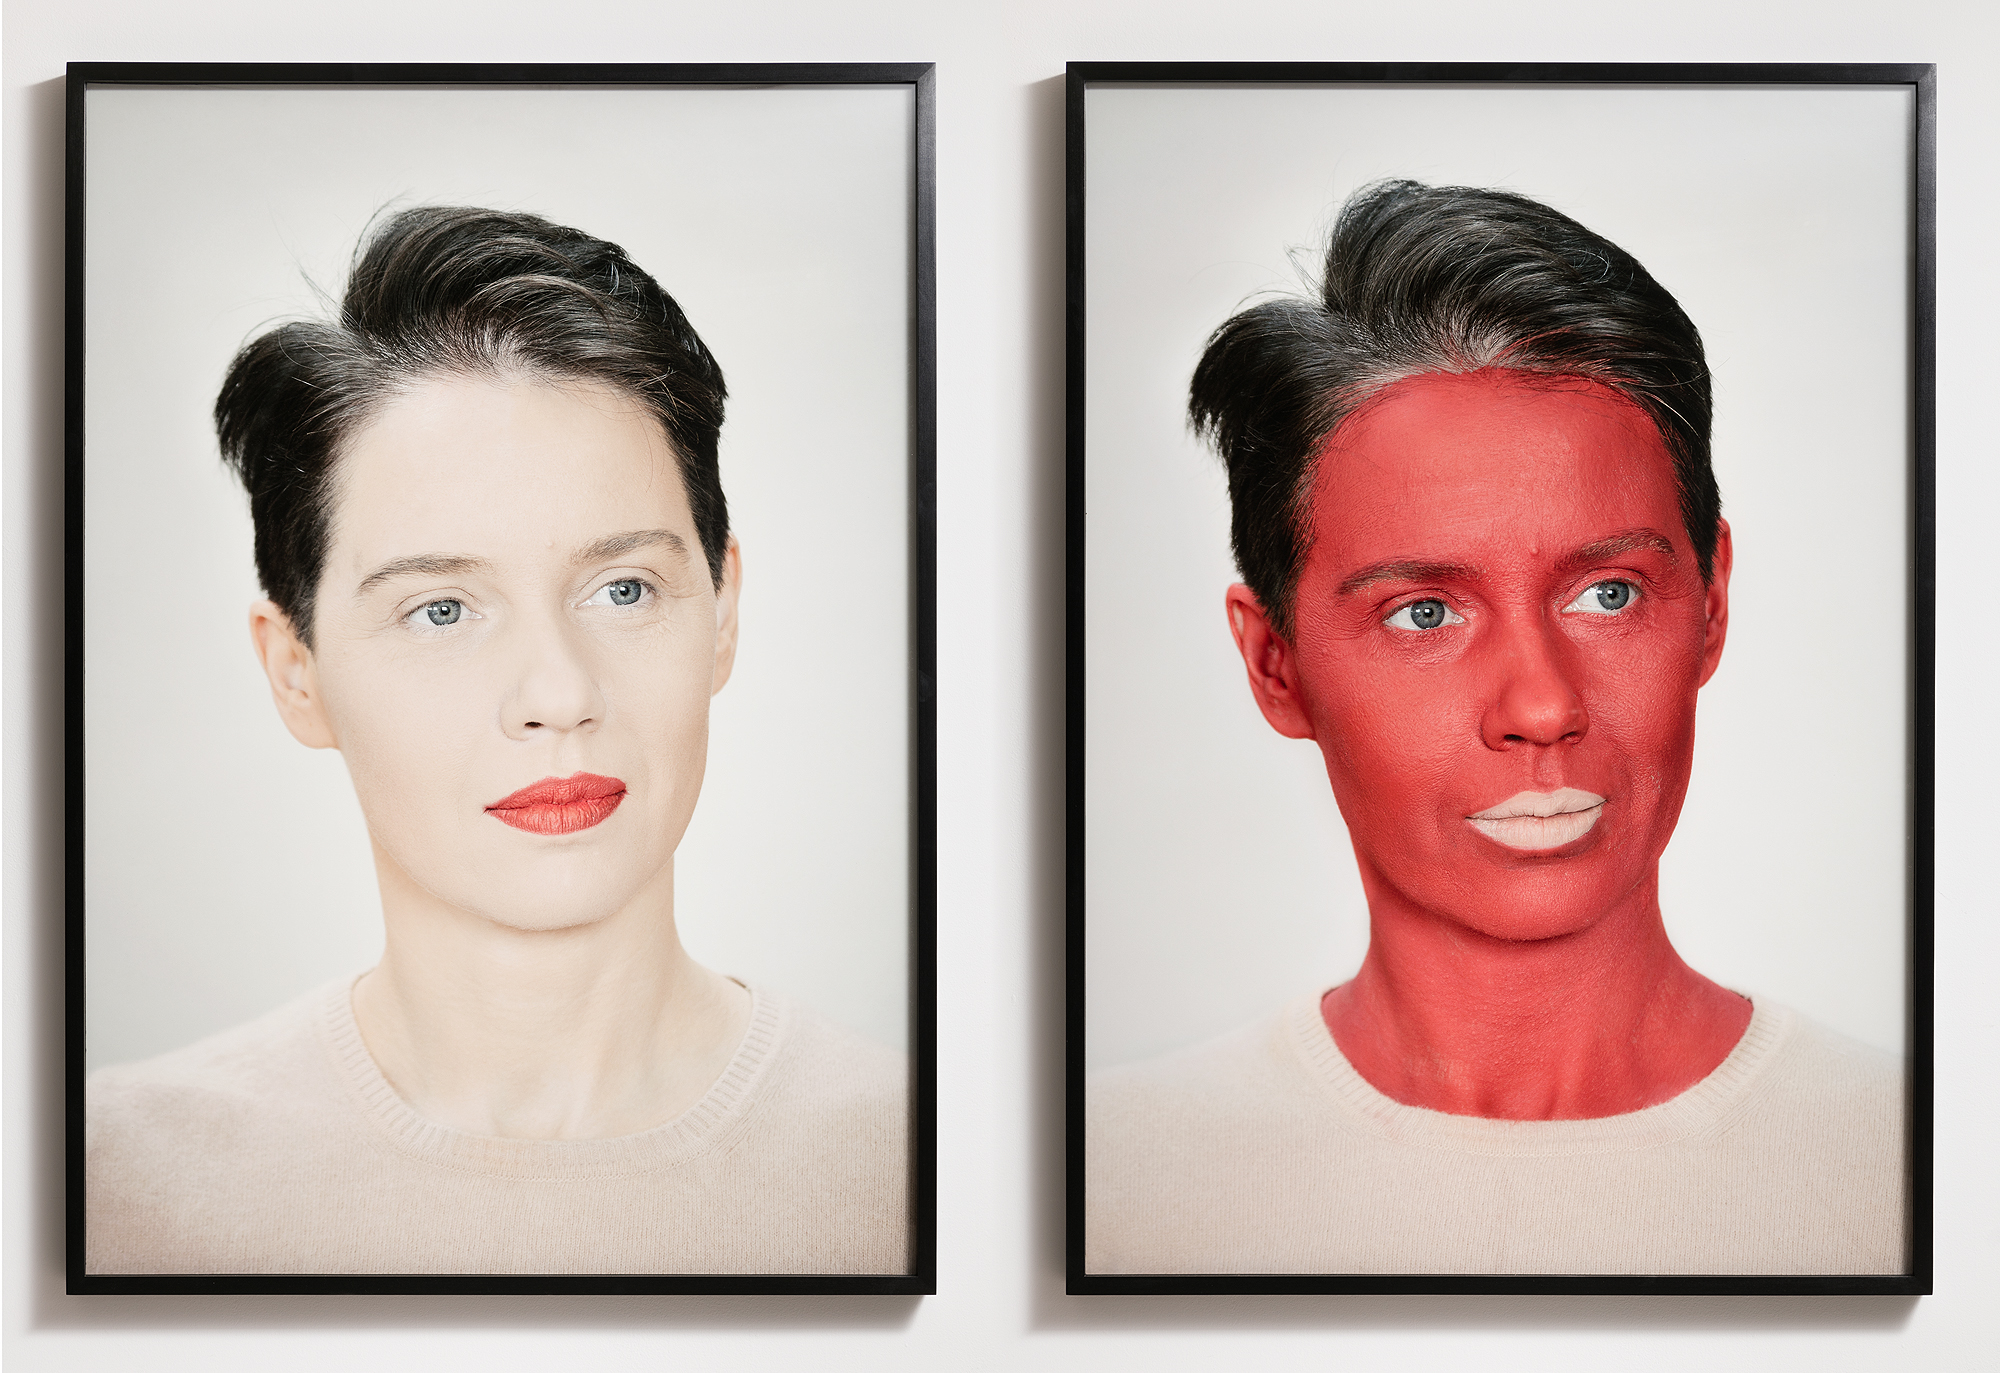 Aneta Grzeszykowska    Negative Make Up , 2016    Archival print on cotton paper   39.37 x 27.56 inches each (100 x 70 cm each)    Edition 1 of 3 + 1 A.P.   AG/566